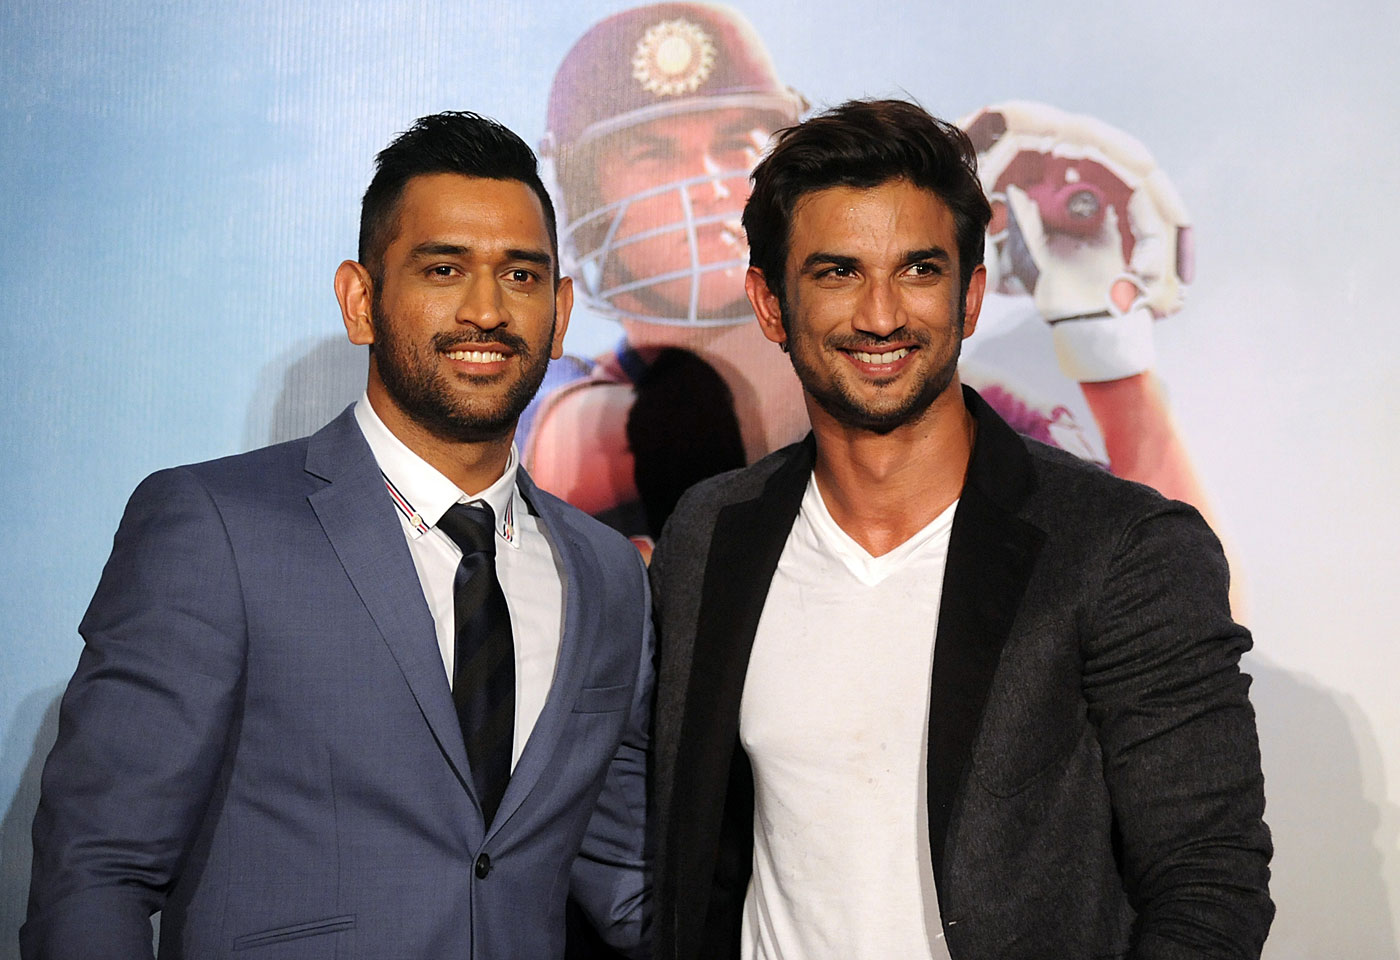 MS Dhoni with actor Sushant Singh Rajput at a promotional event for the movie <i>MS Dhoni: The Untold Story</i>